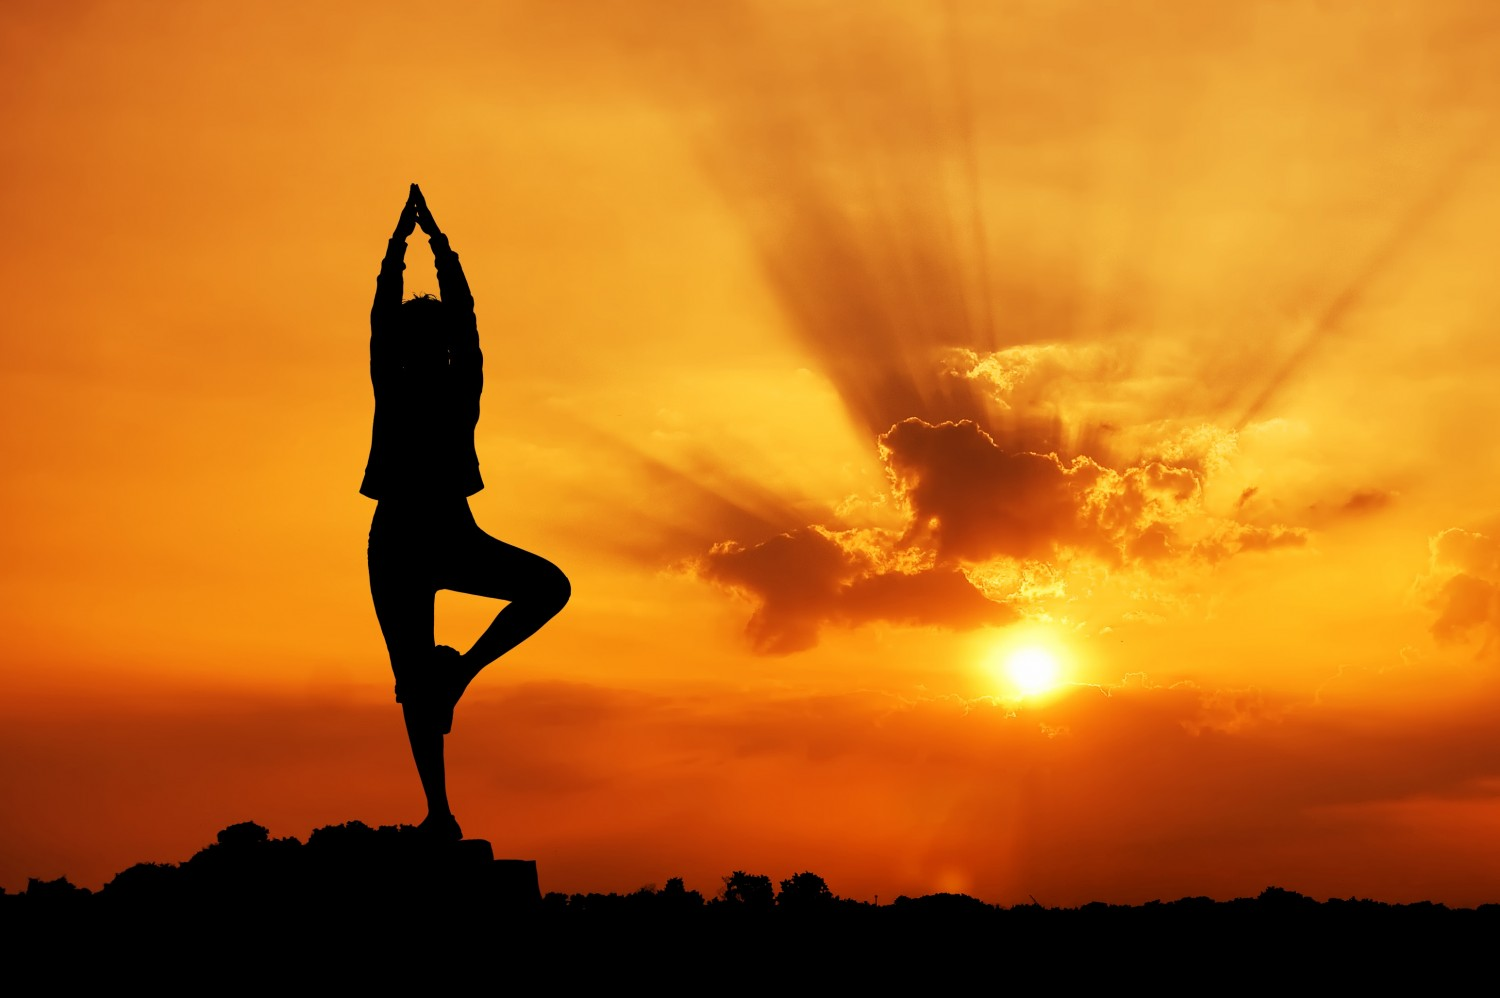 June 21 is celebrated as the International Day of Yoga